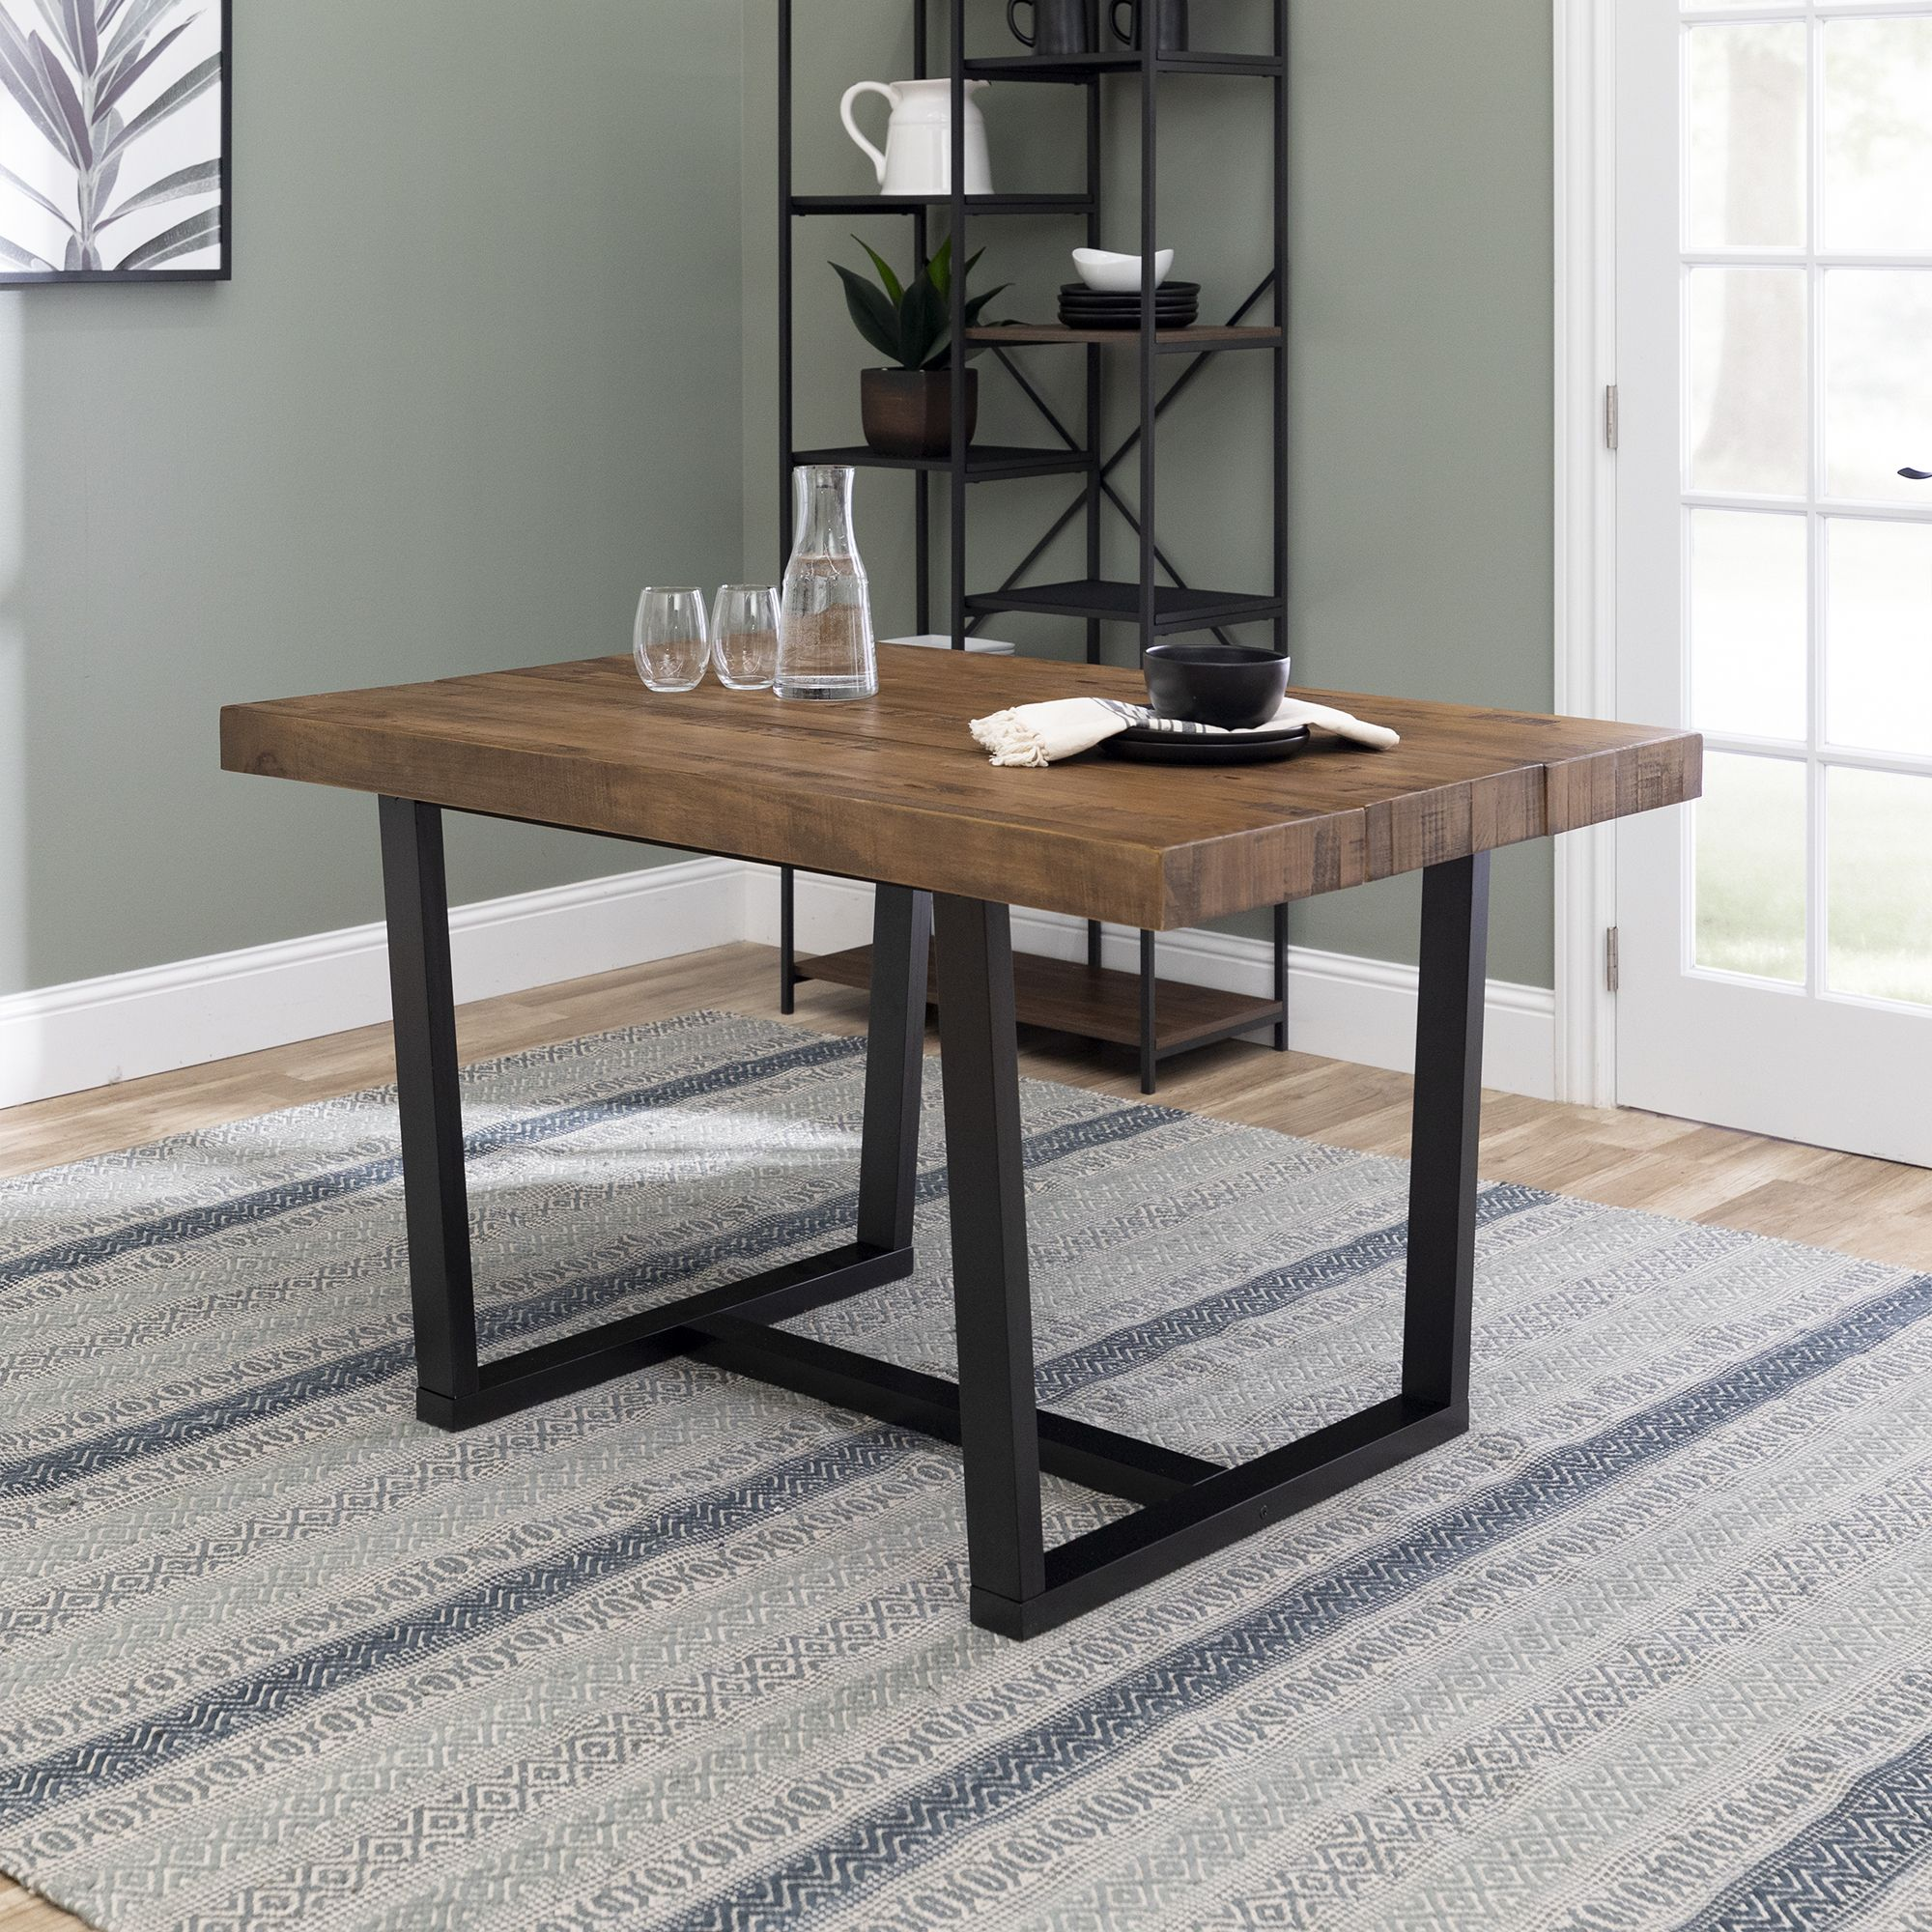 52 Distressed Solid Wood Dining Table Reclaimed Barnwood